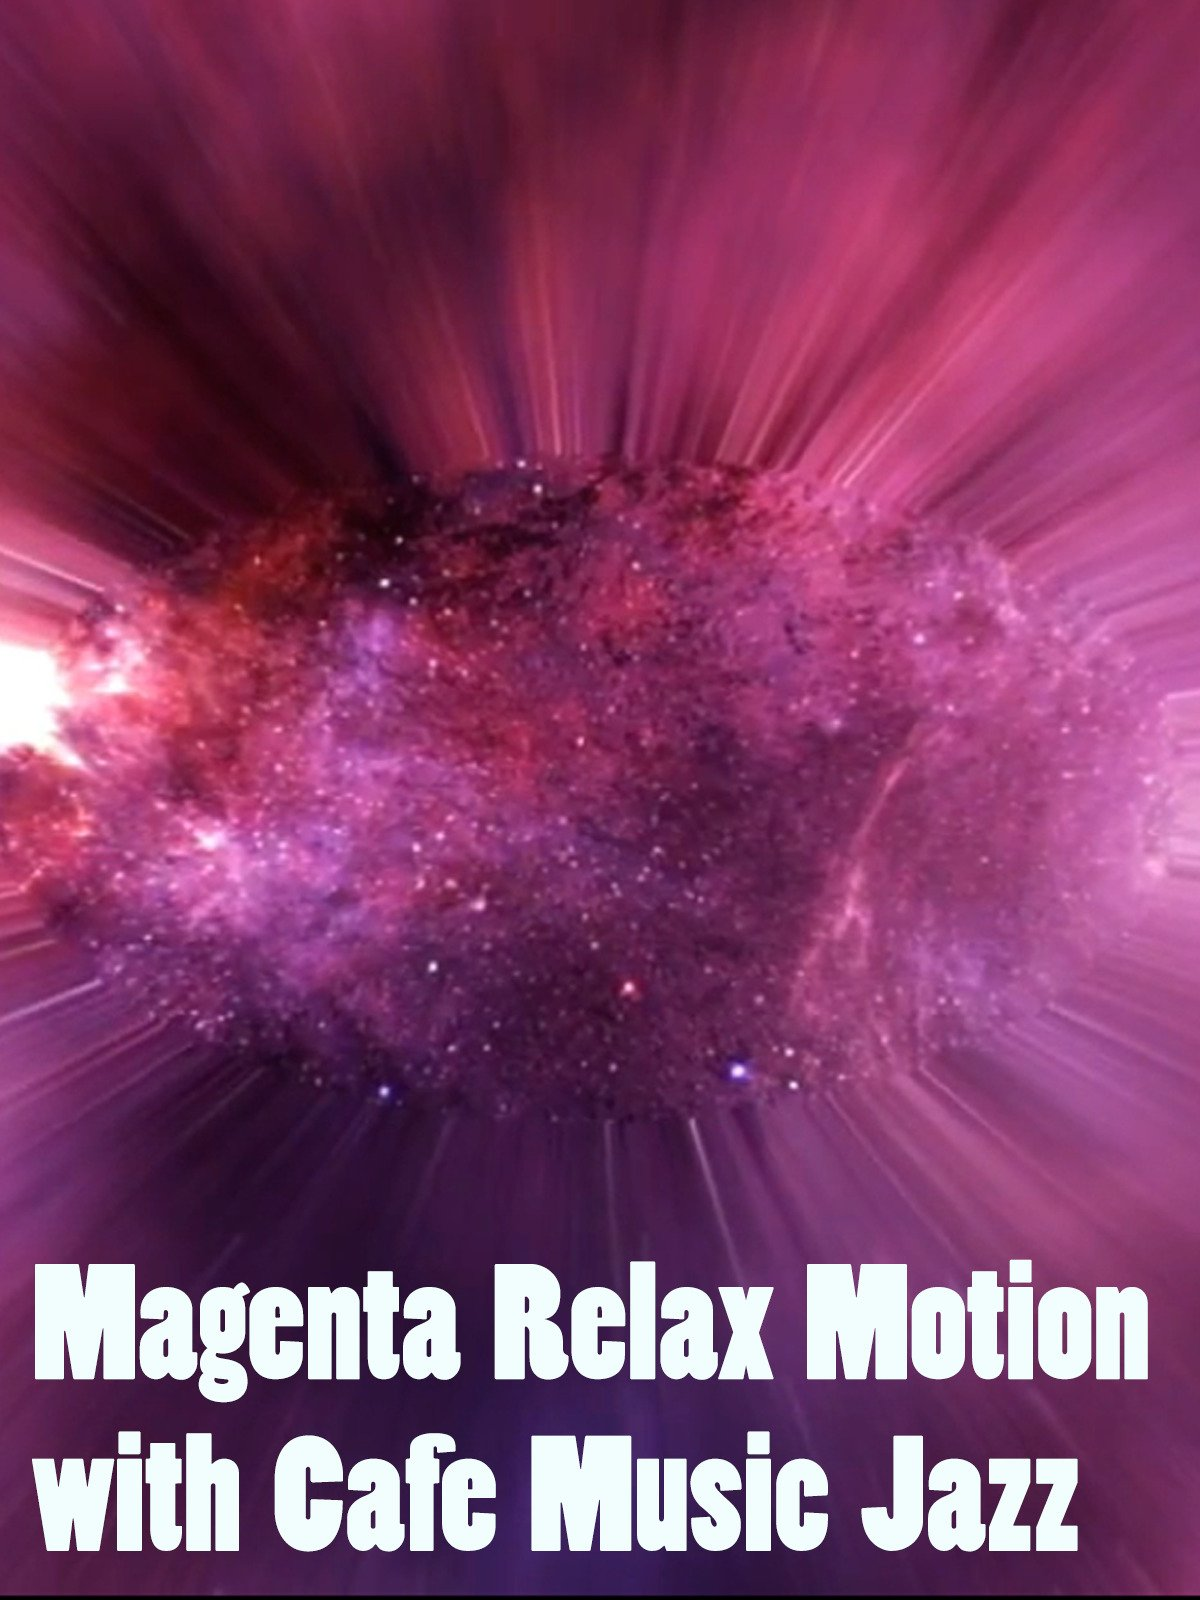 Magenta Relax Motion with Cafe Music Jazz